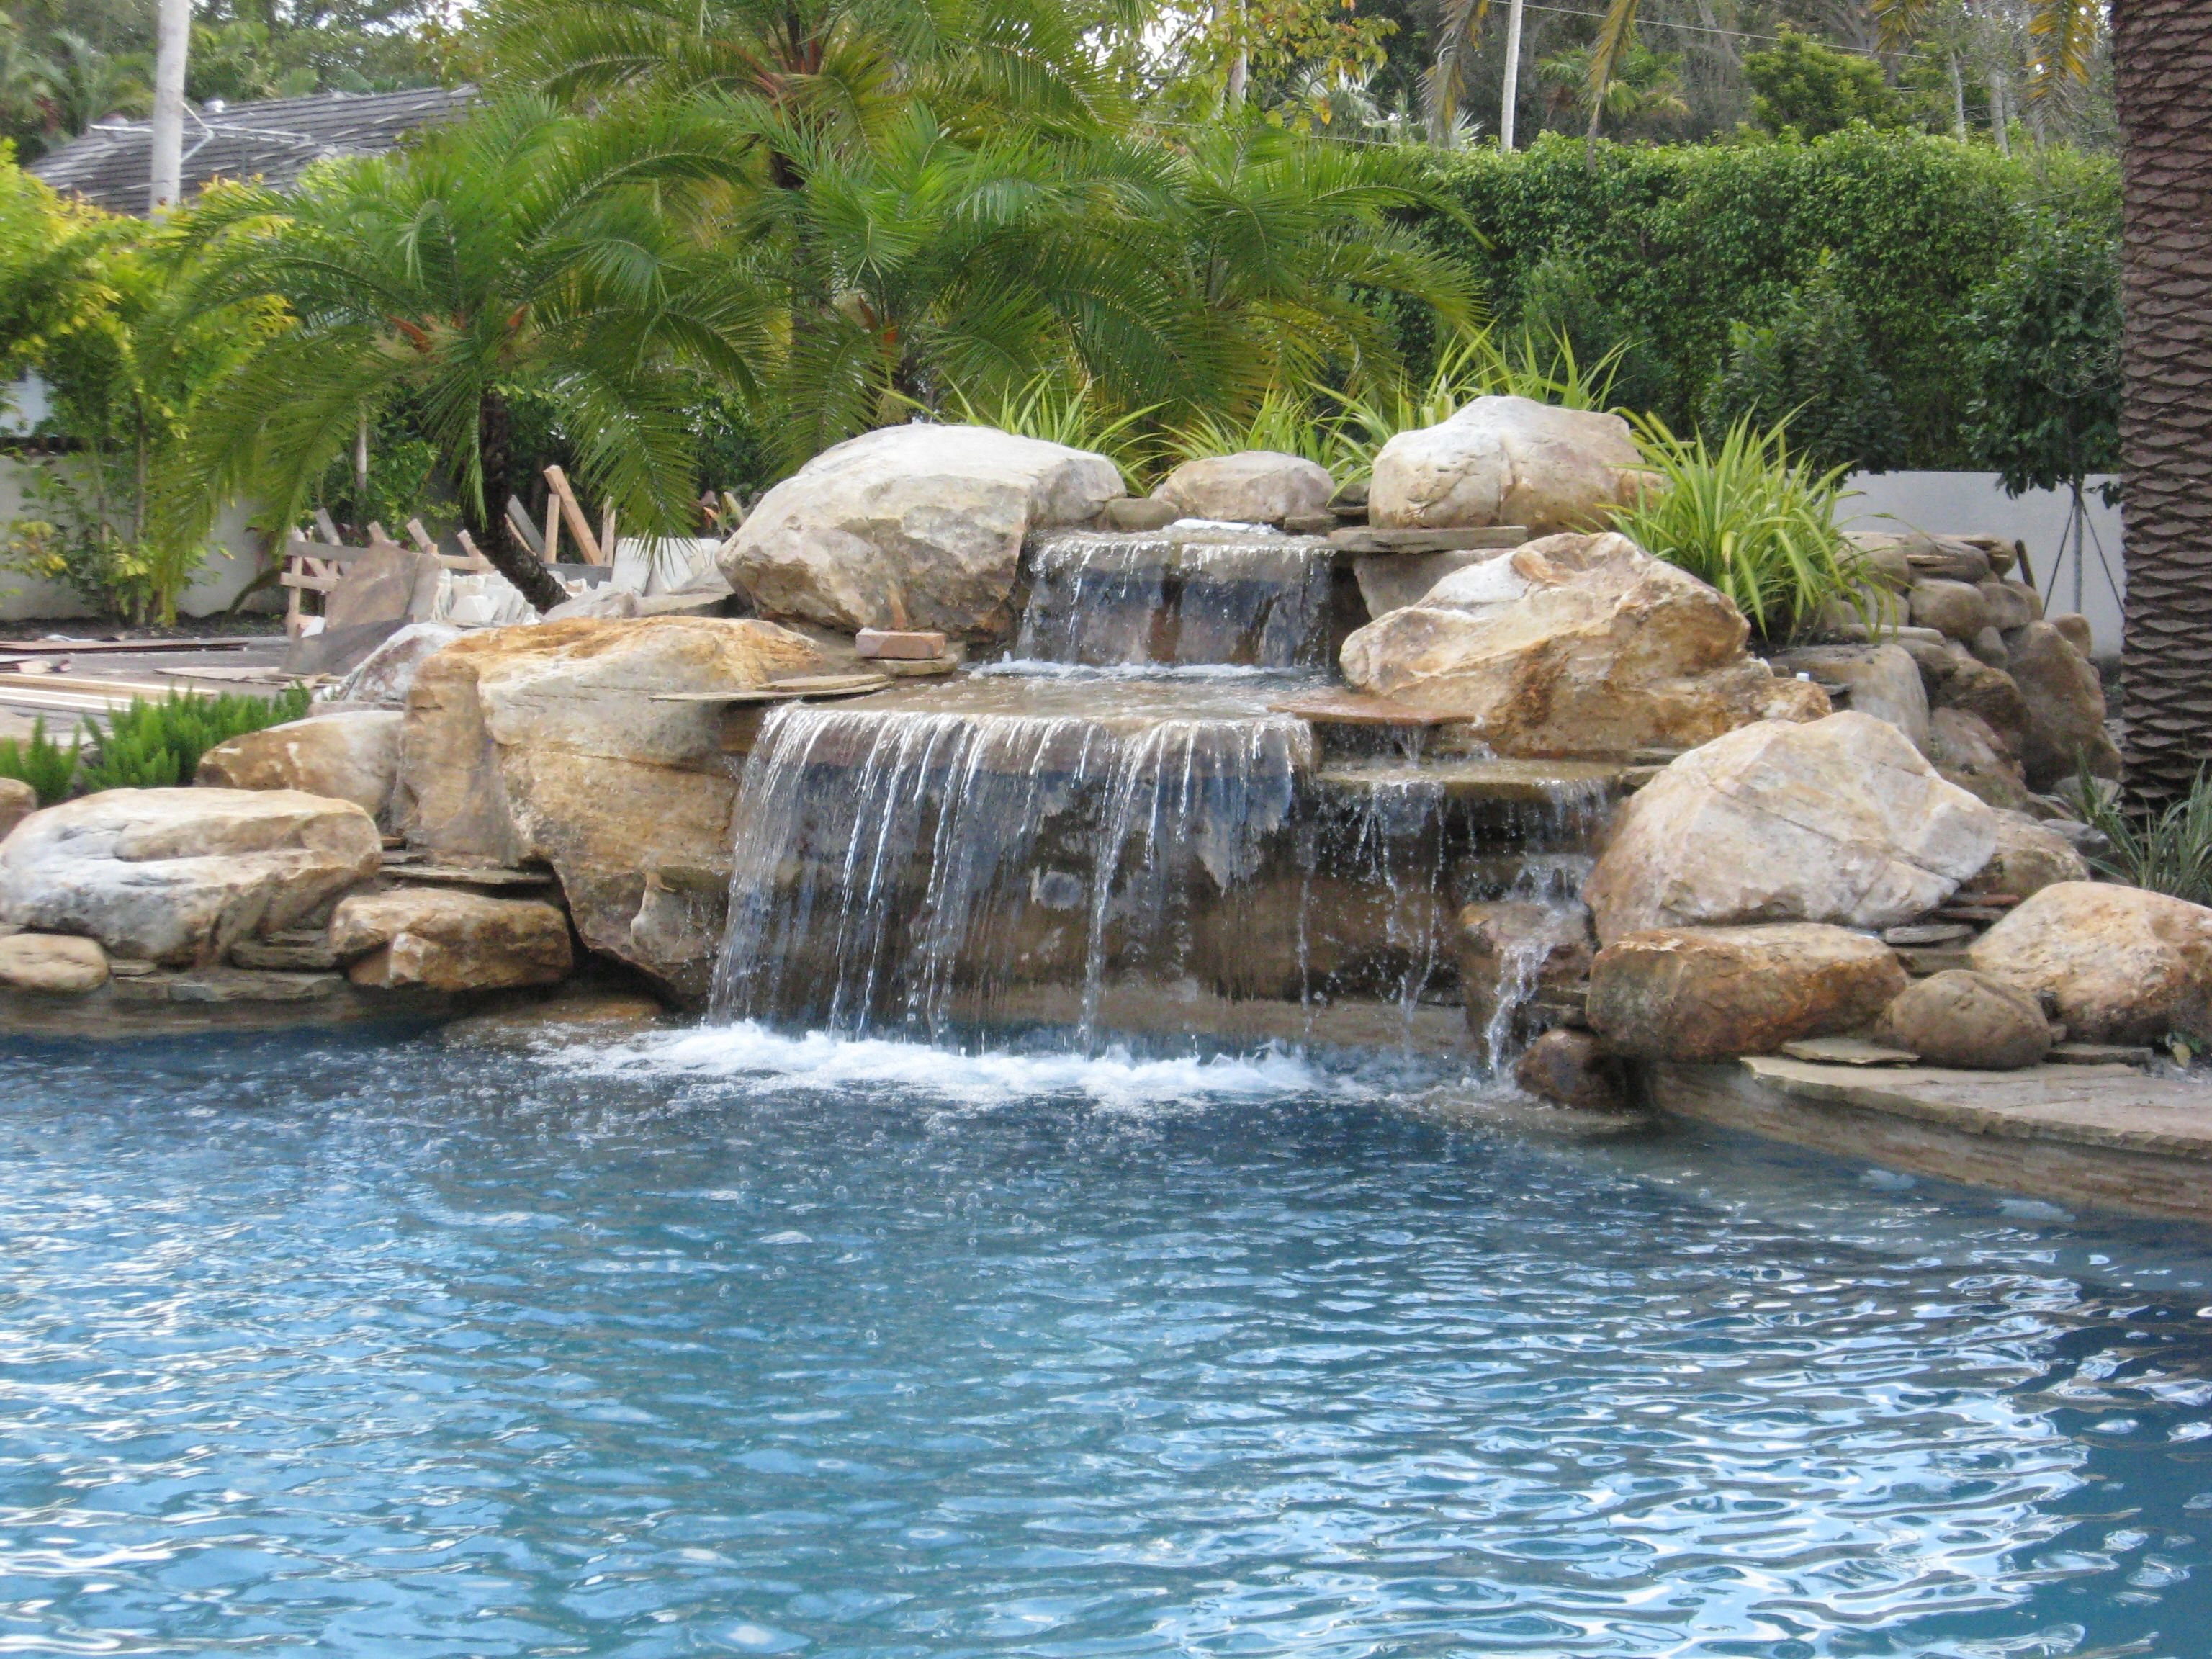 Luxury Pools Stone Walk In Pool W Beach Sand Luxury Gardens Luxury Waterfall Fabulous Pools